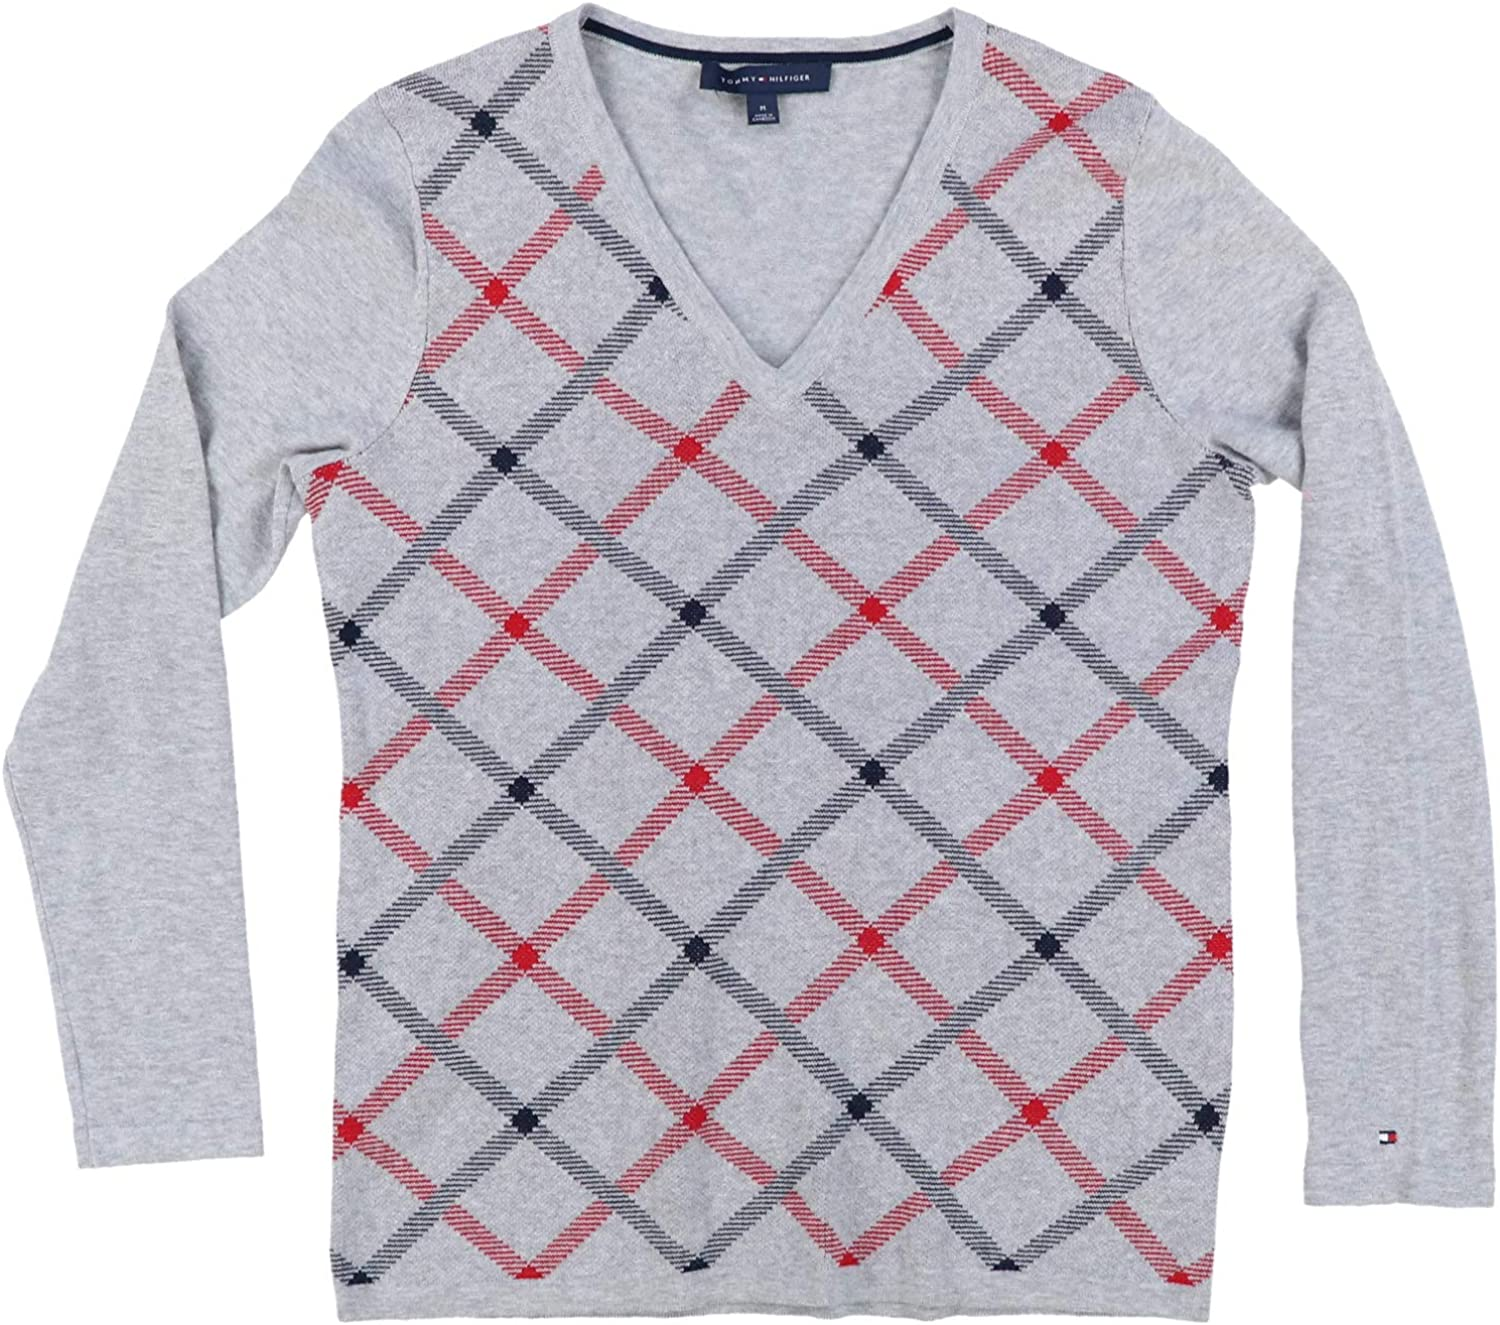 Tommy Hilfiger Womens Knit Pullover Sweater